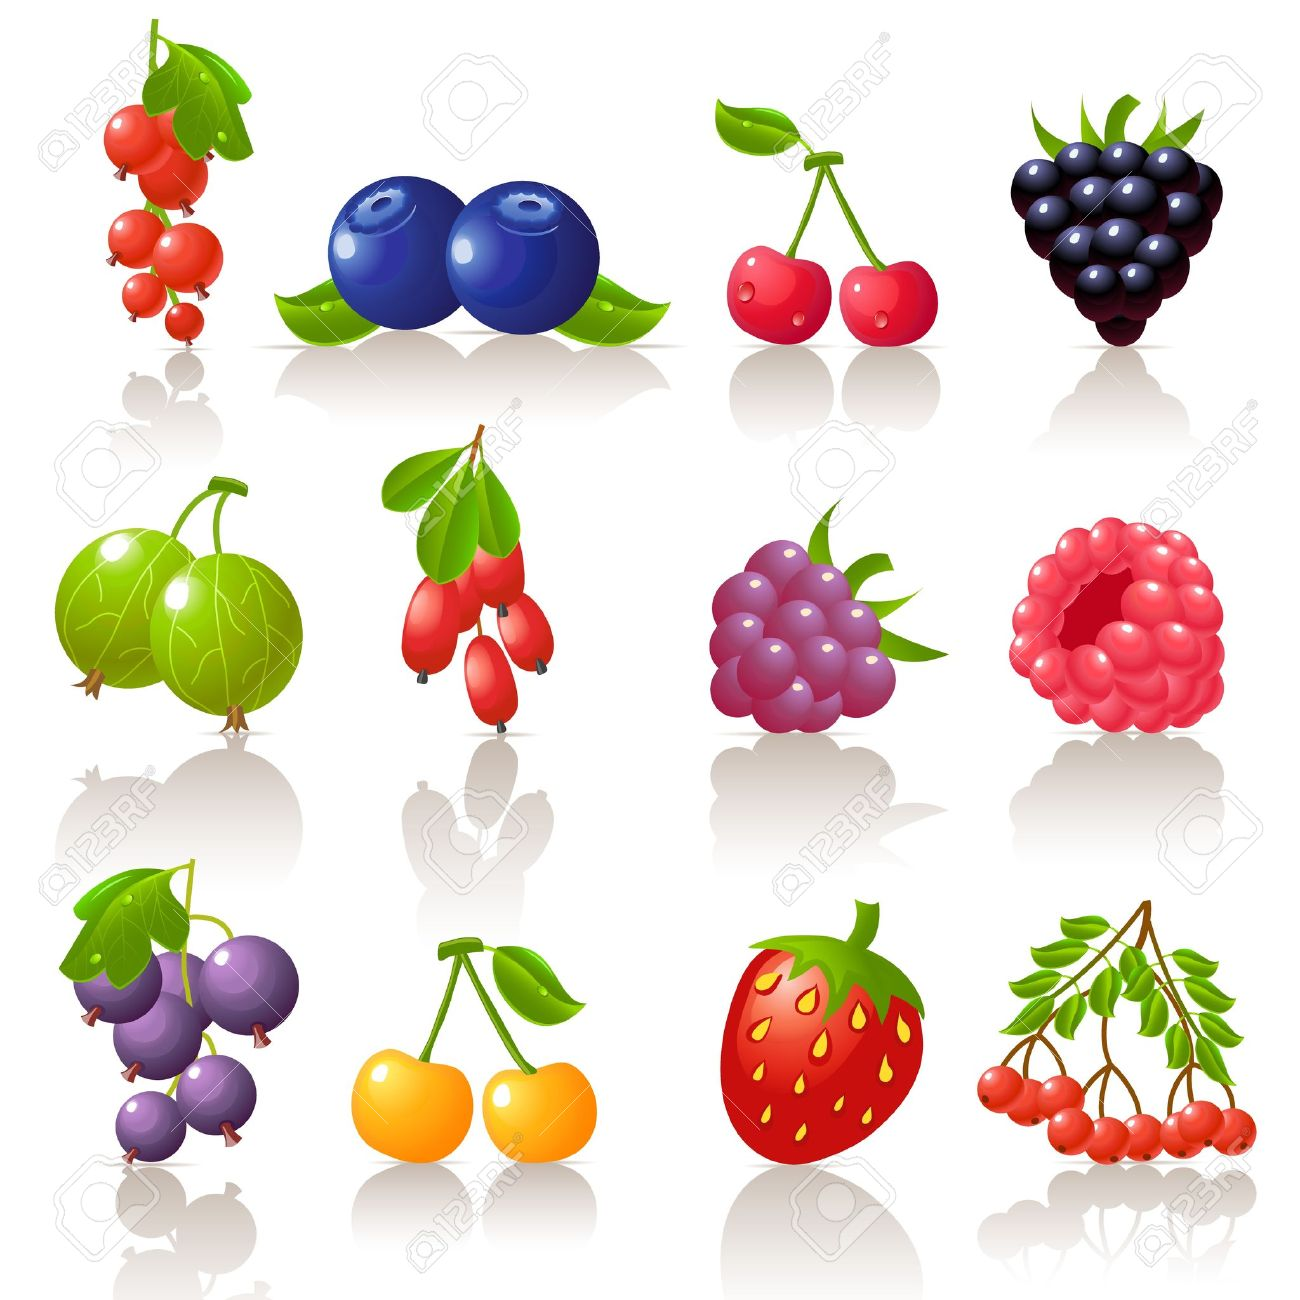 Berry Icon Set Royalty Free Cliparts, Vectors, And Stock.